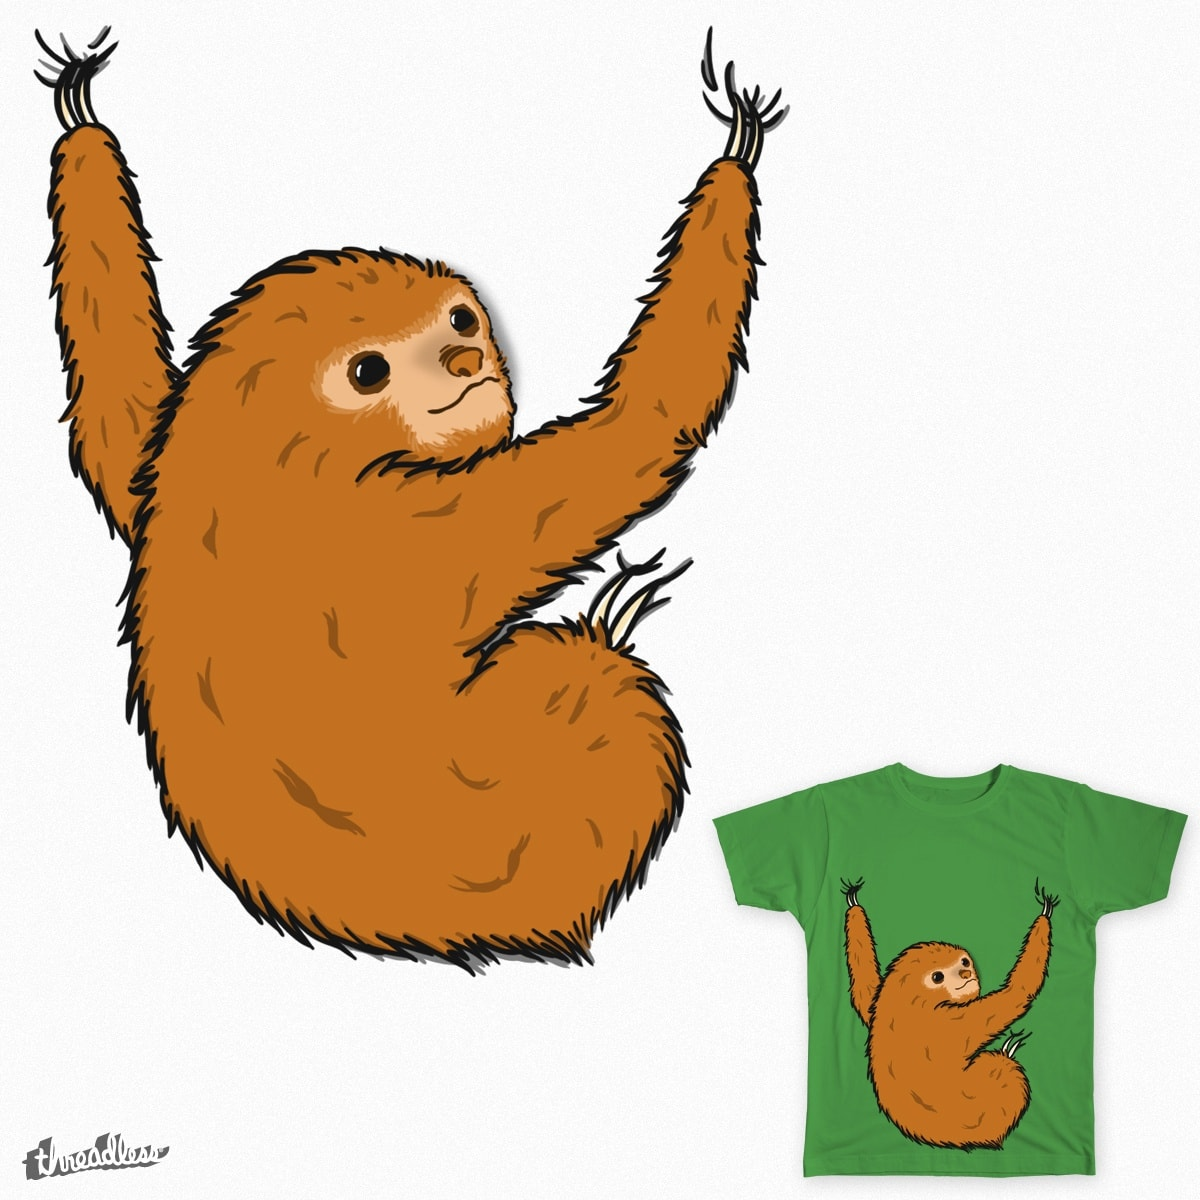 Hug the sloth! by cross7fu on Threadless